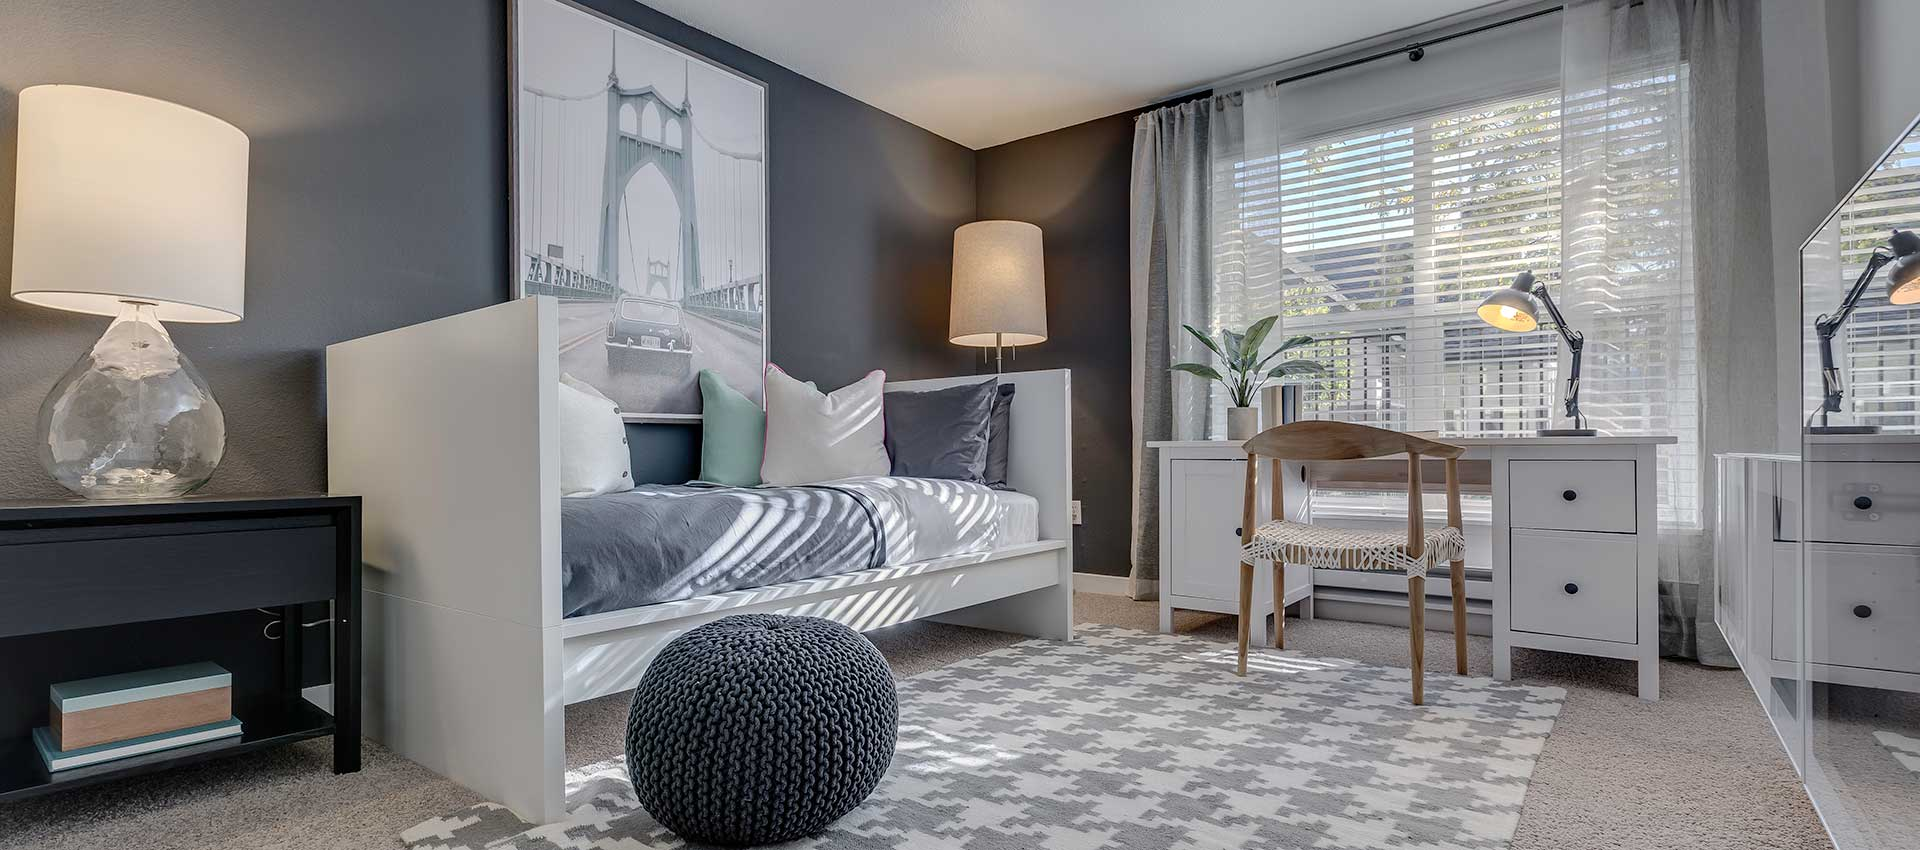 Second bedroom at Centro Apartment Homes in Hillsboro, Oregon